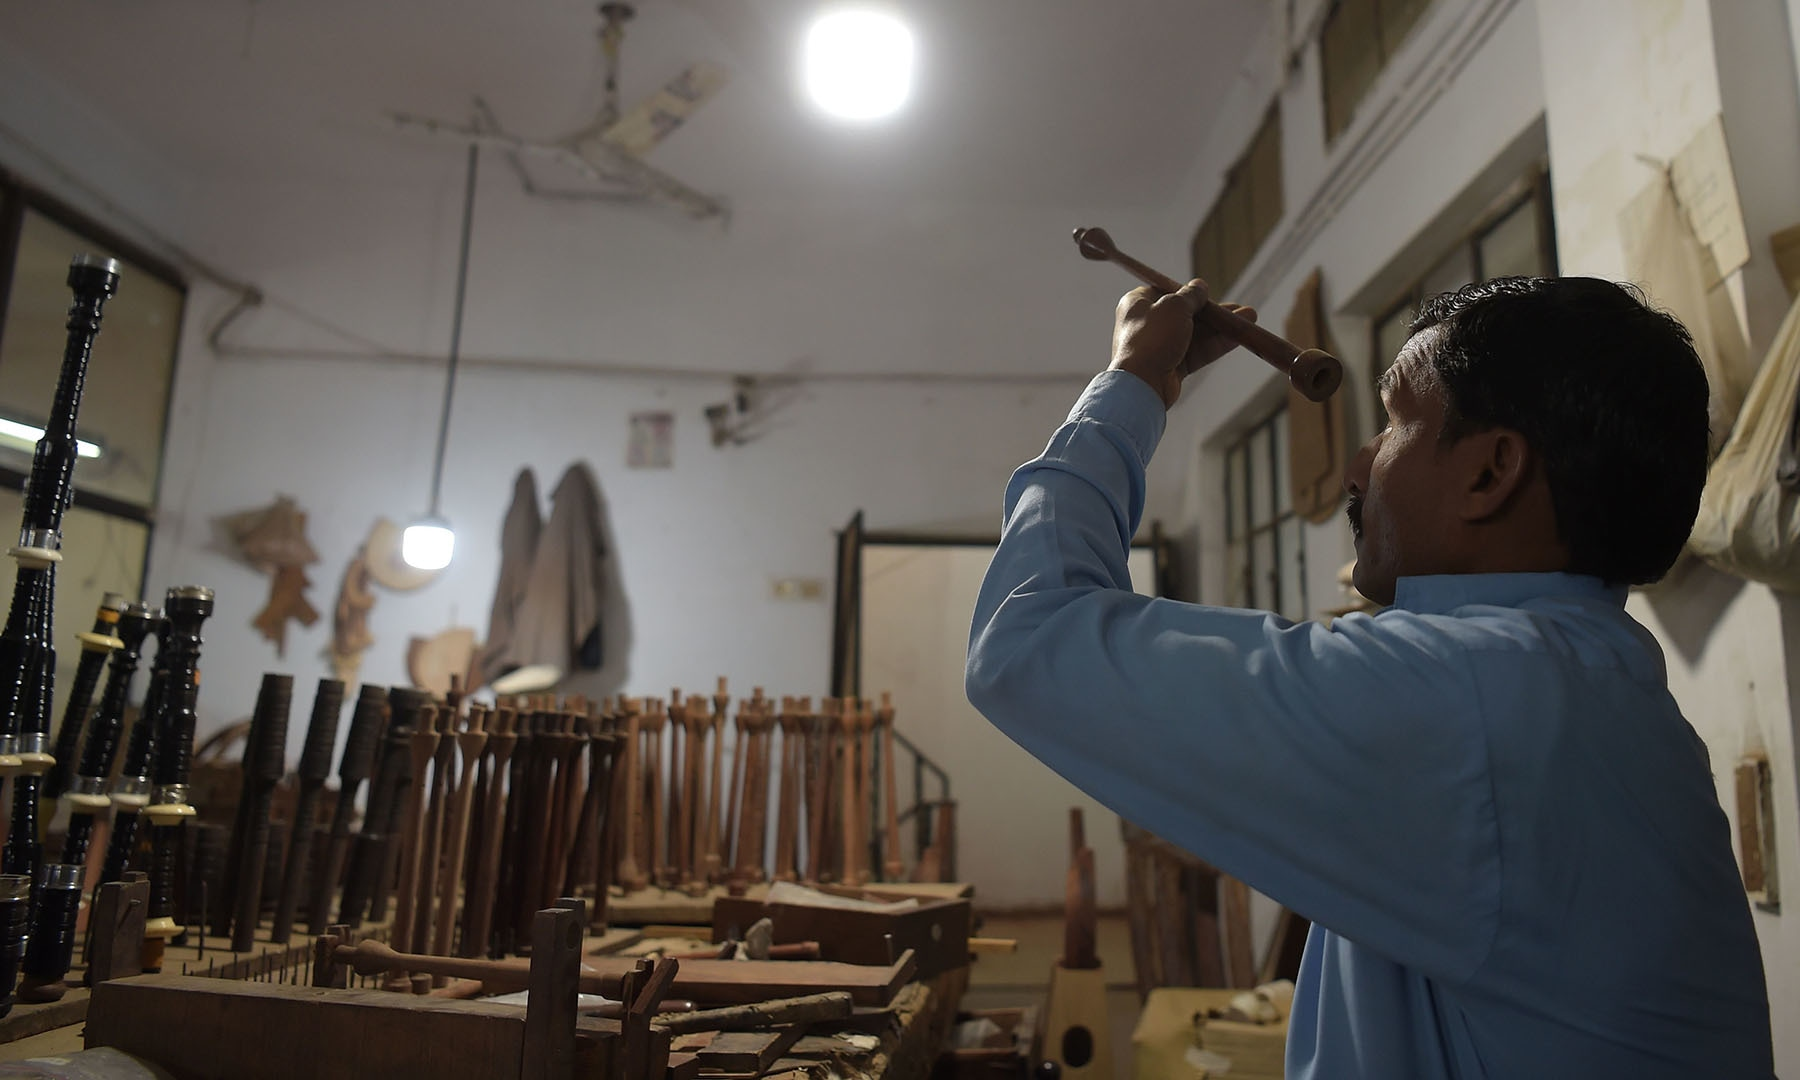 In this picture taken on January 25, a worker prepares a component to make a set of bagpipes at the Mid East bagpipe factory in Sialkot.  — AFP